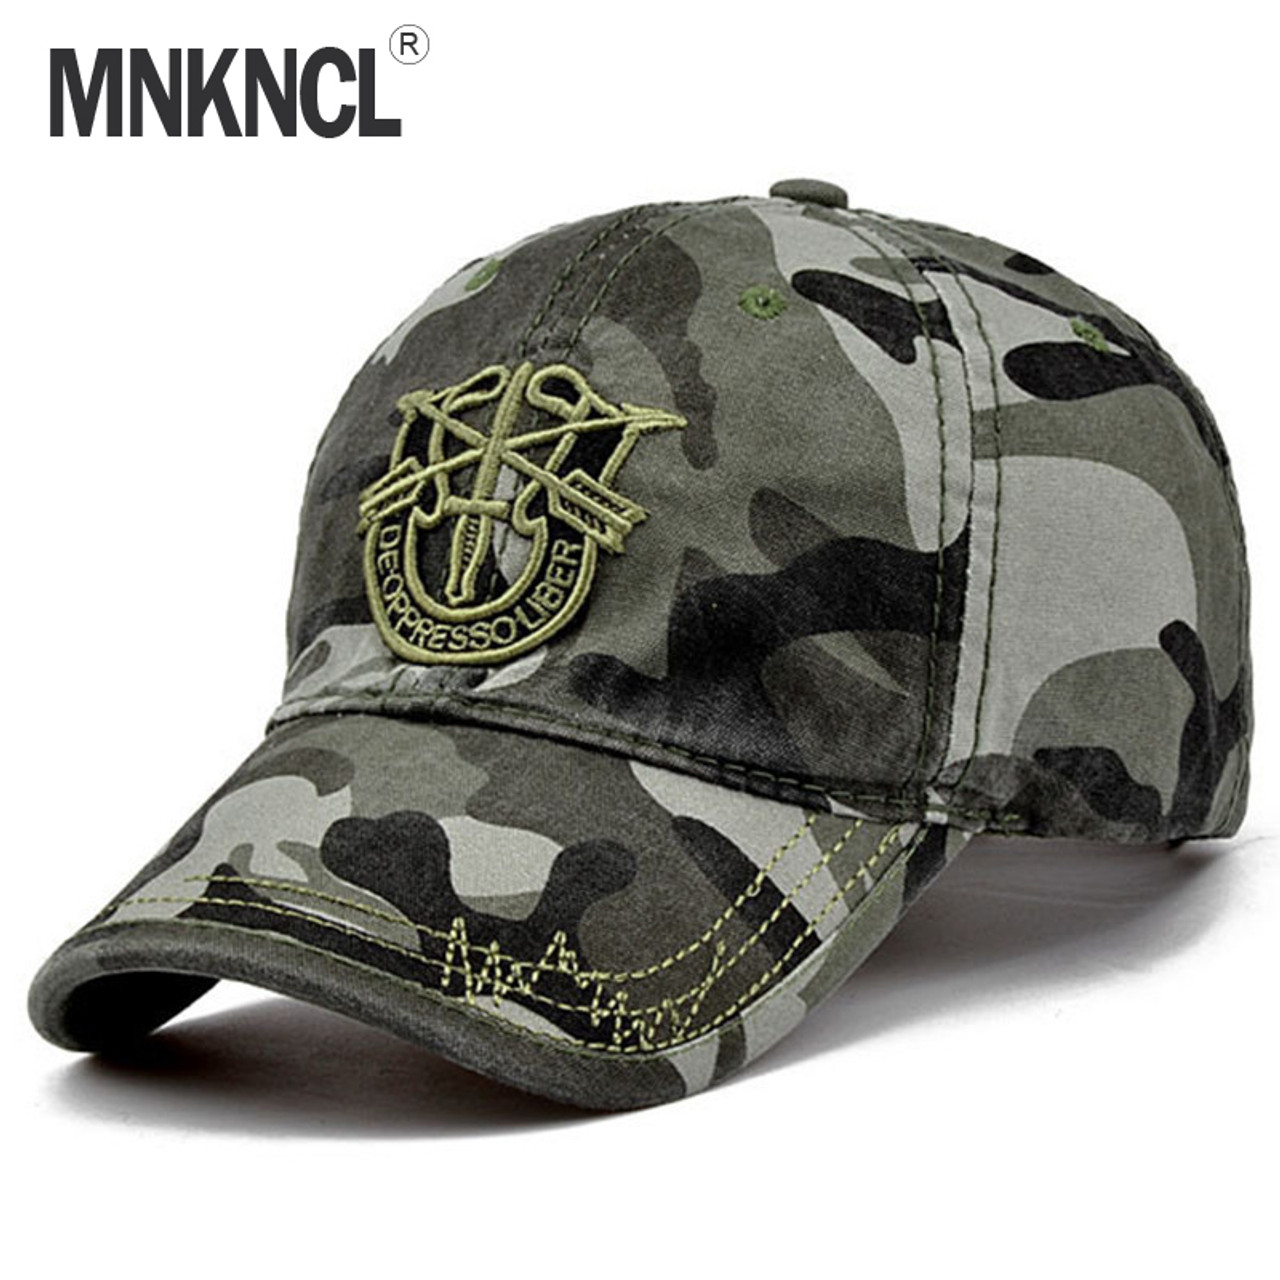 2017 New Brand Fashion Army Camo Baseball Cap Men Women Tactical Sun Hat  Letter Adjustable Camouflage Casual Snapback Cap - OnshopDeals.Com 543f4c25f9fd